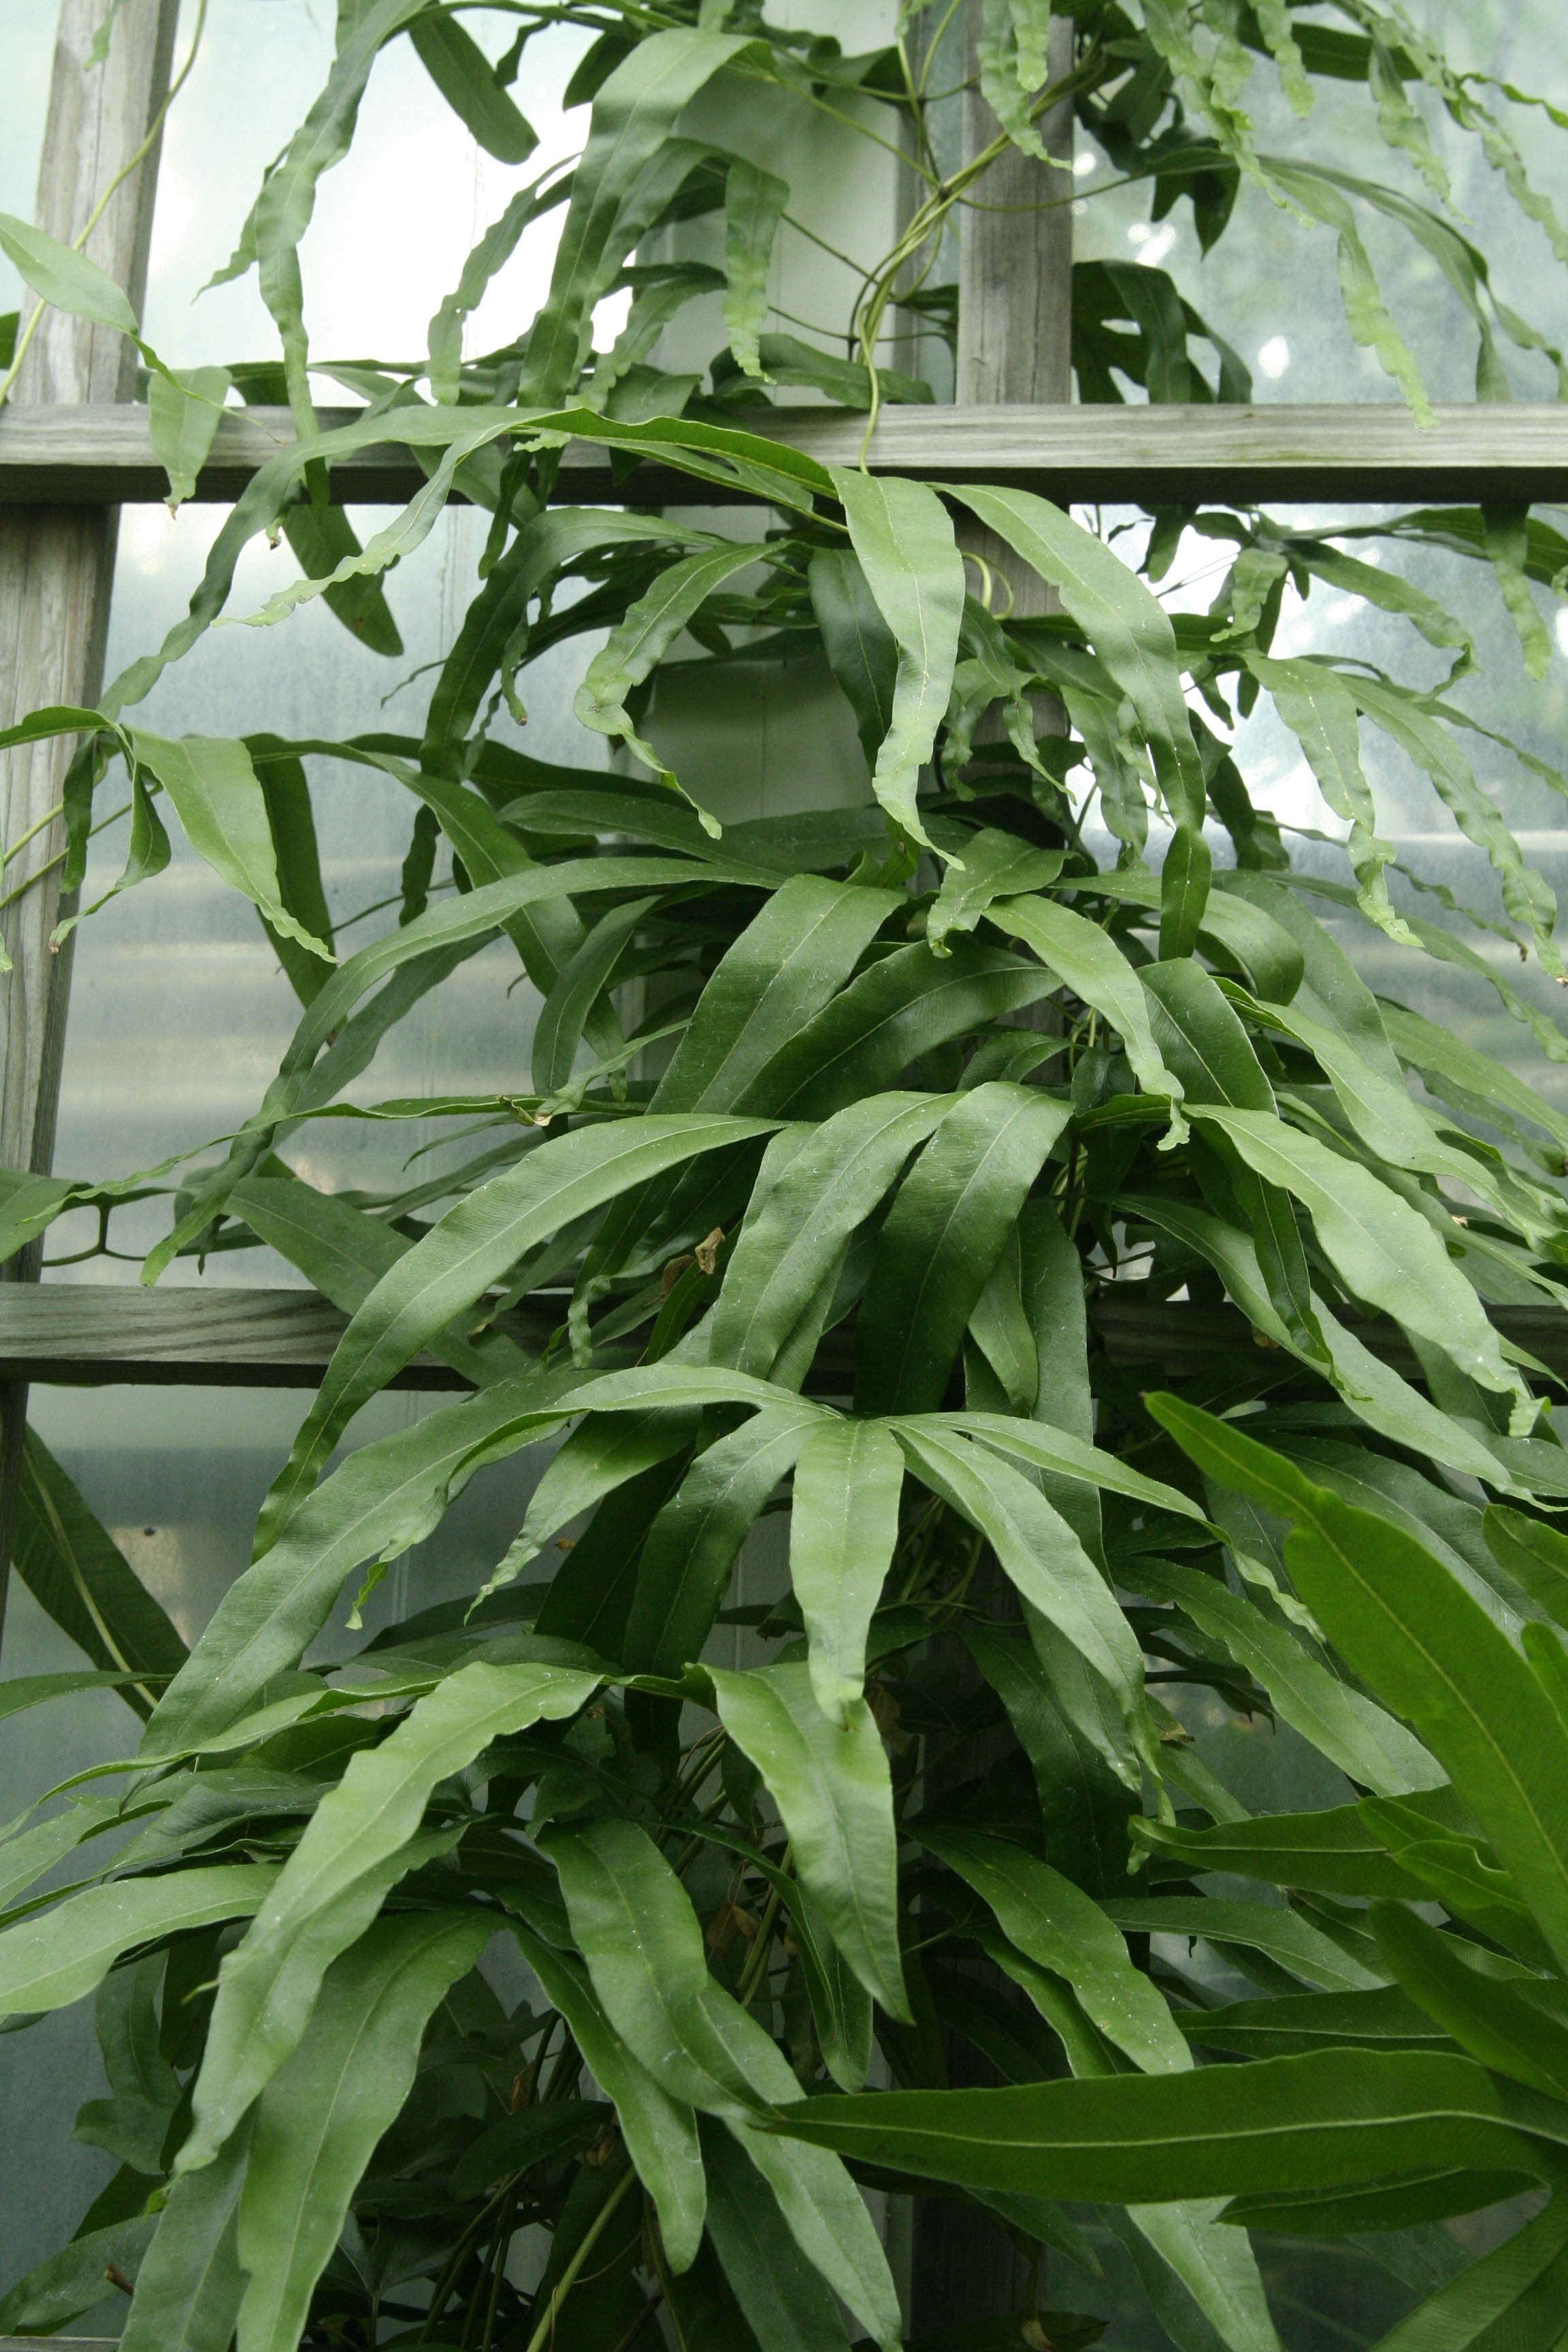 Leaves of a Lygodium in the greenhouse